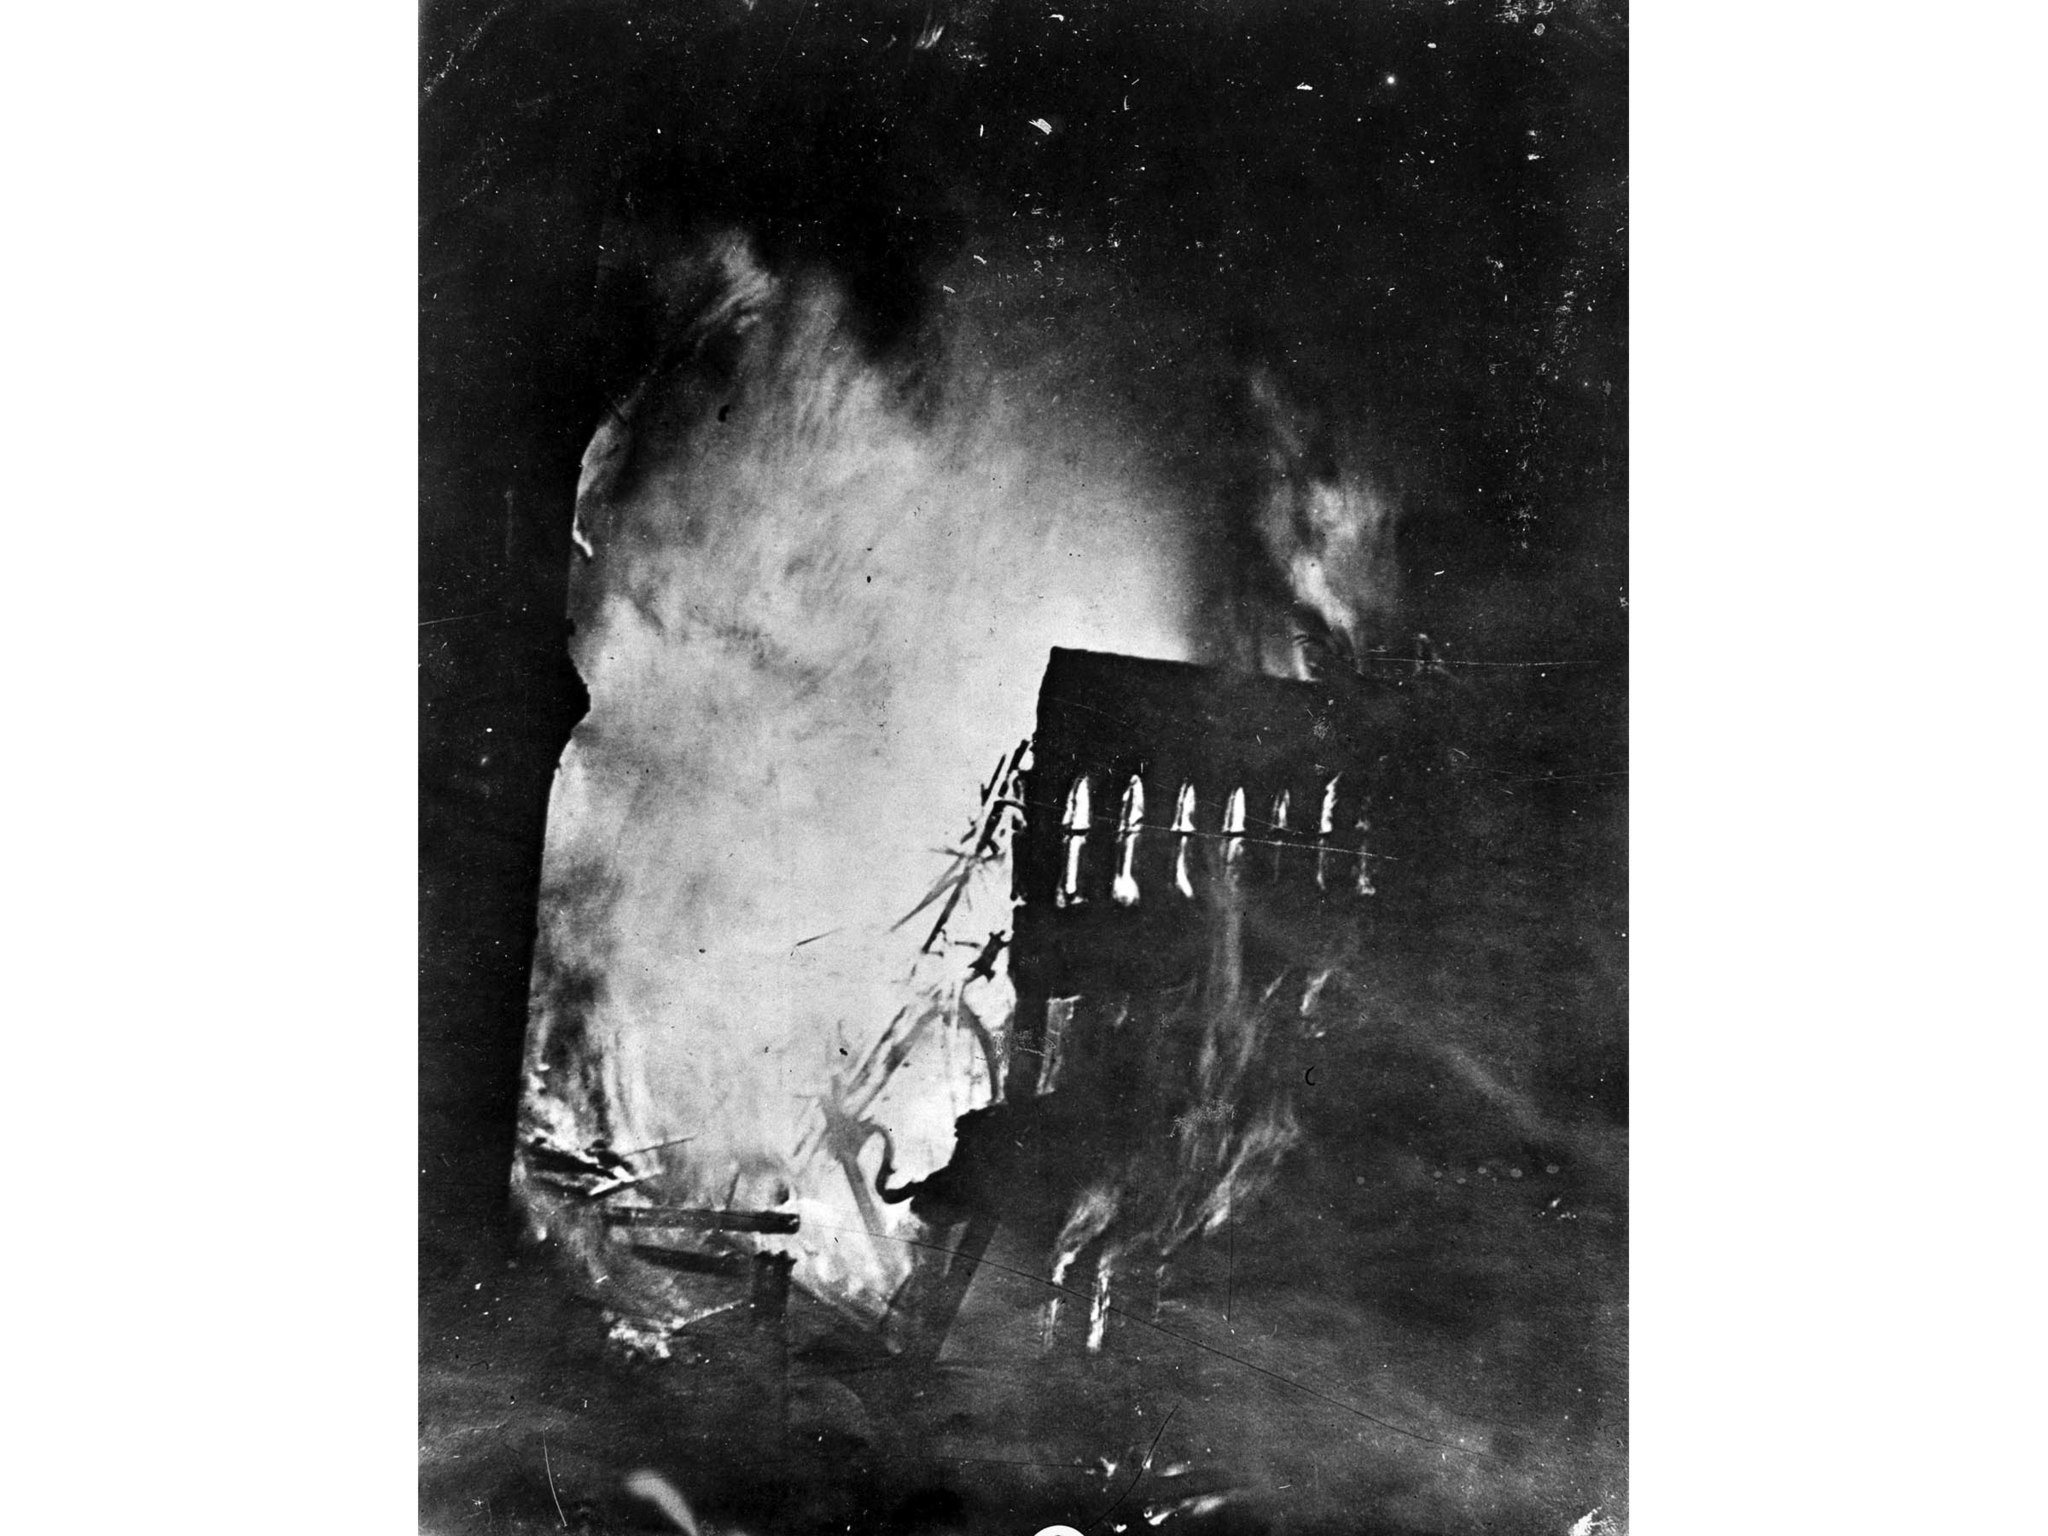 Oct. 1, 1910: Thirty minutes after the explosion, fire consumes the Times building.